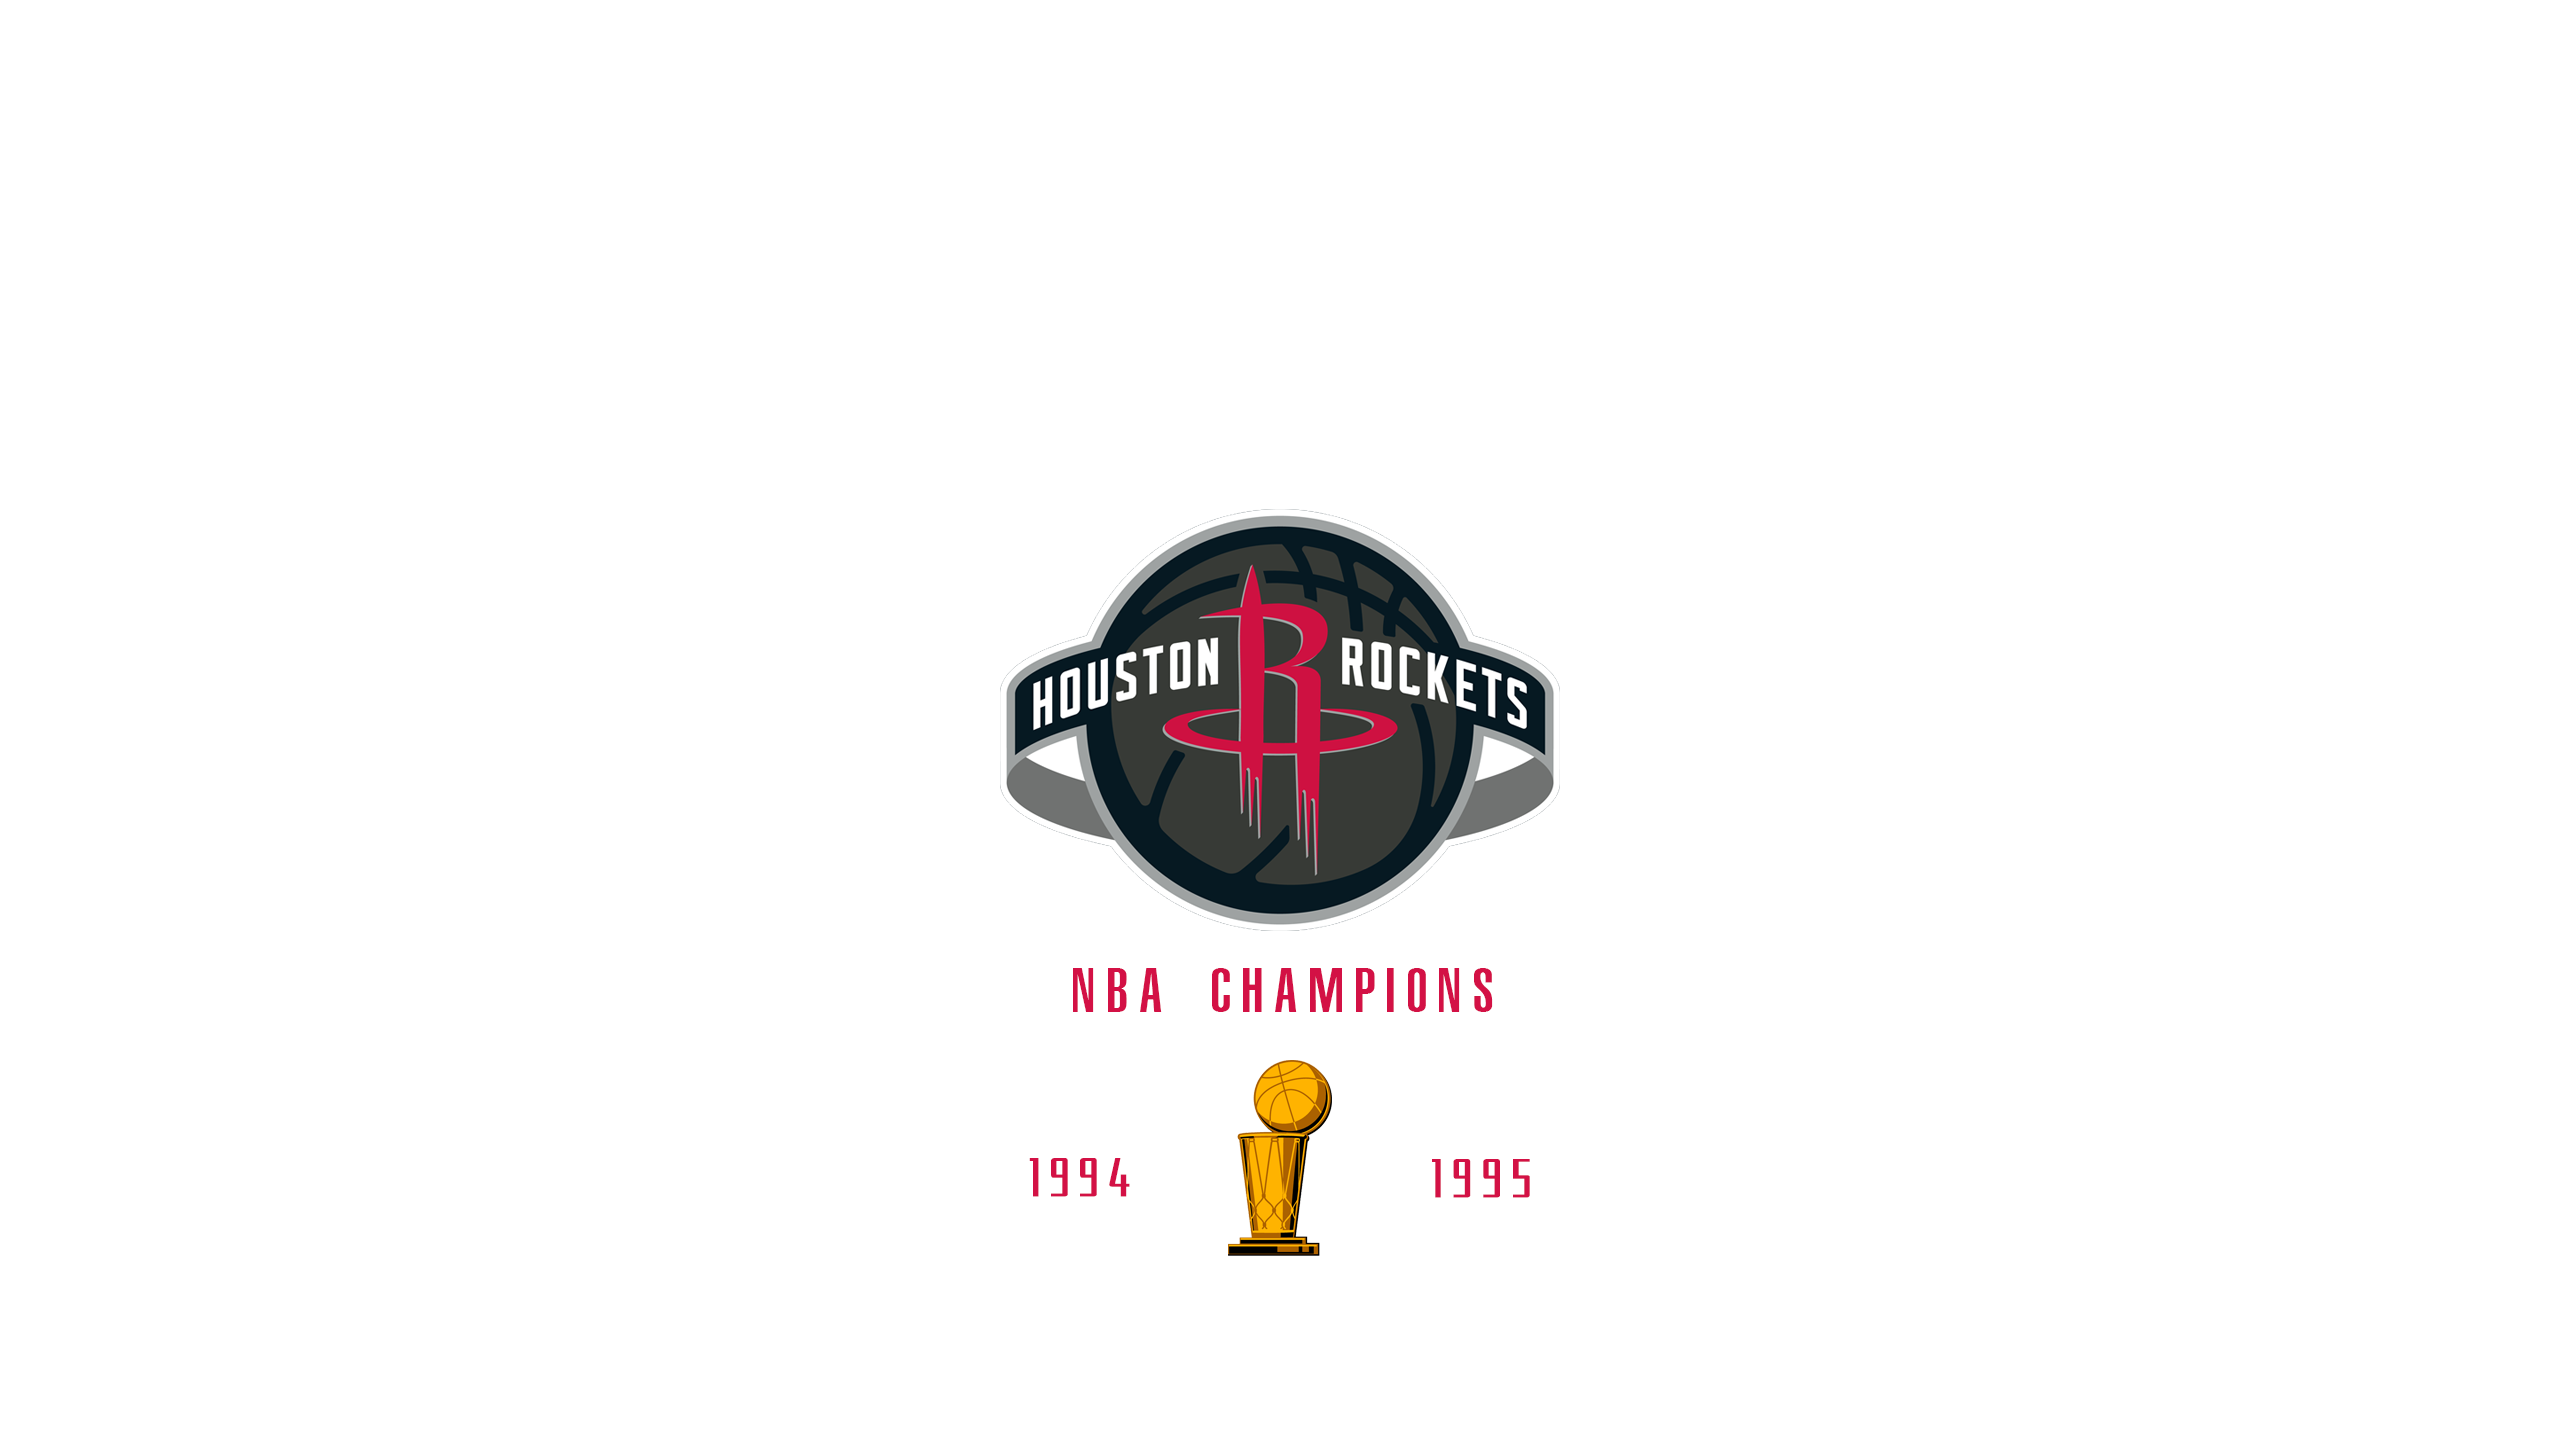 Houston Rockets - NBA Champs